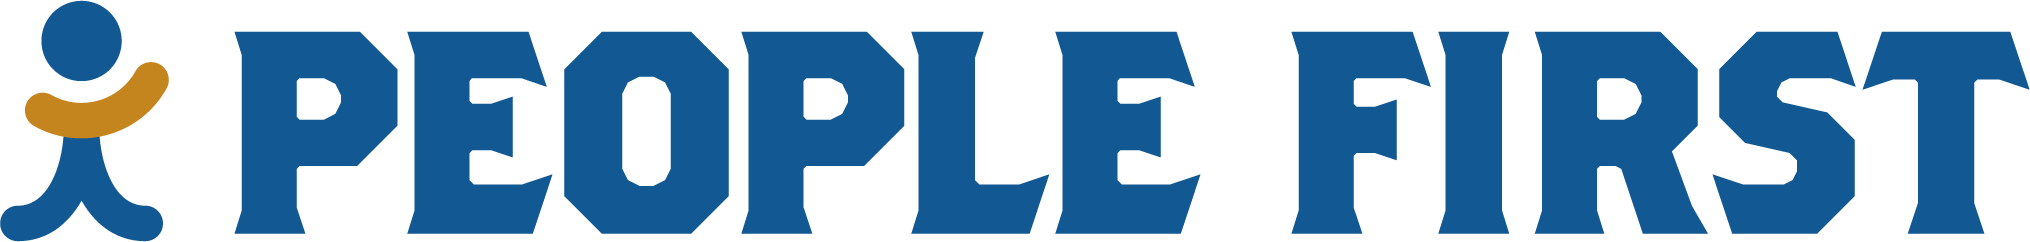 people-first-logo-and-type